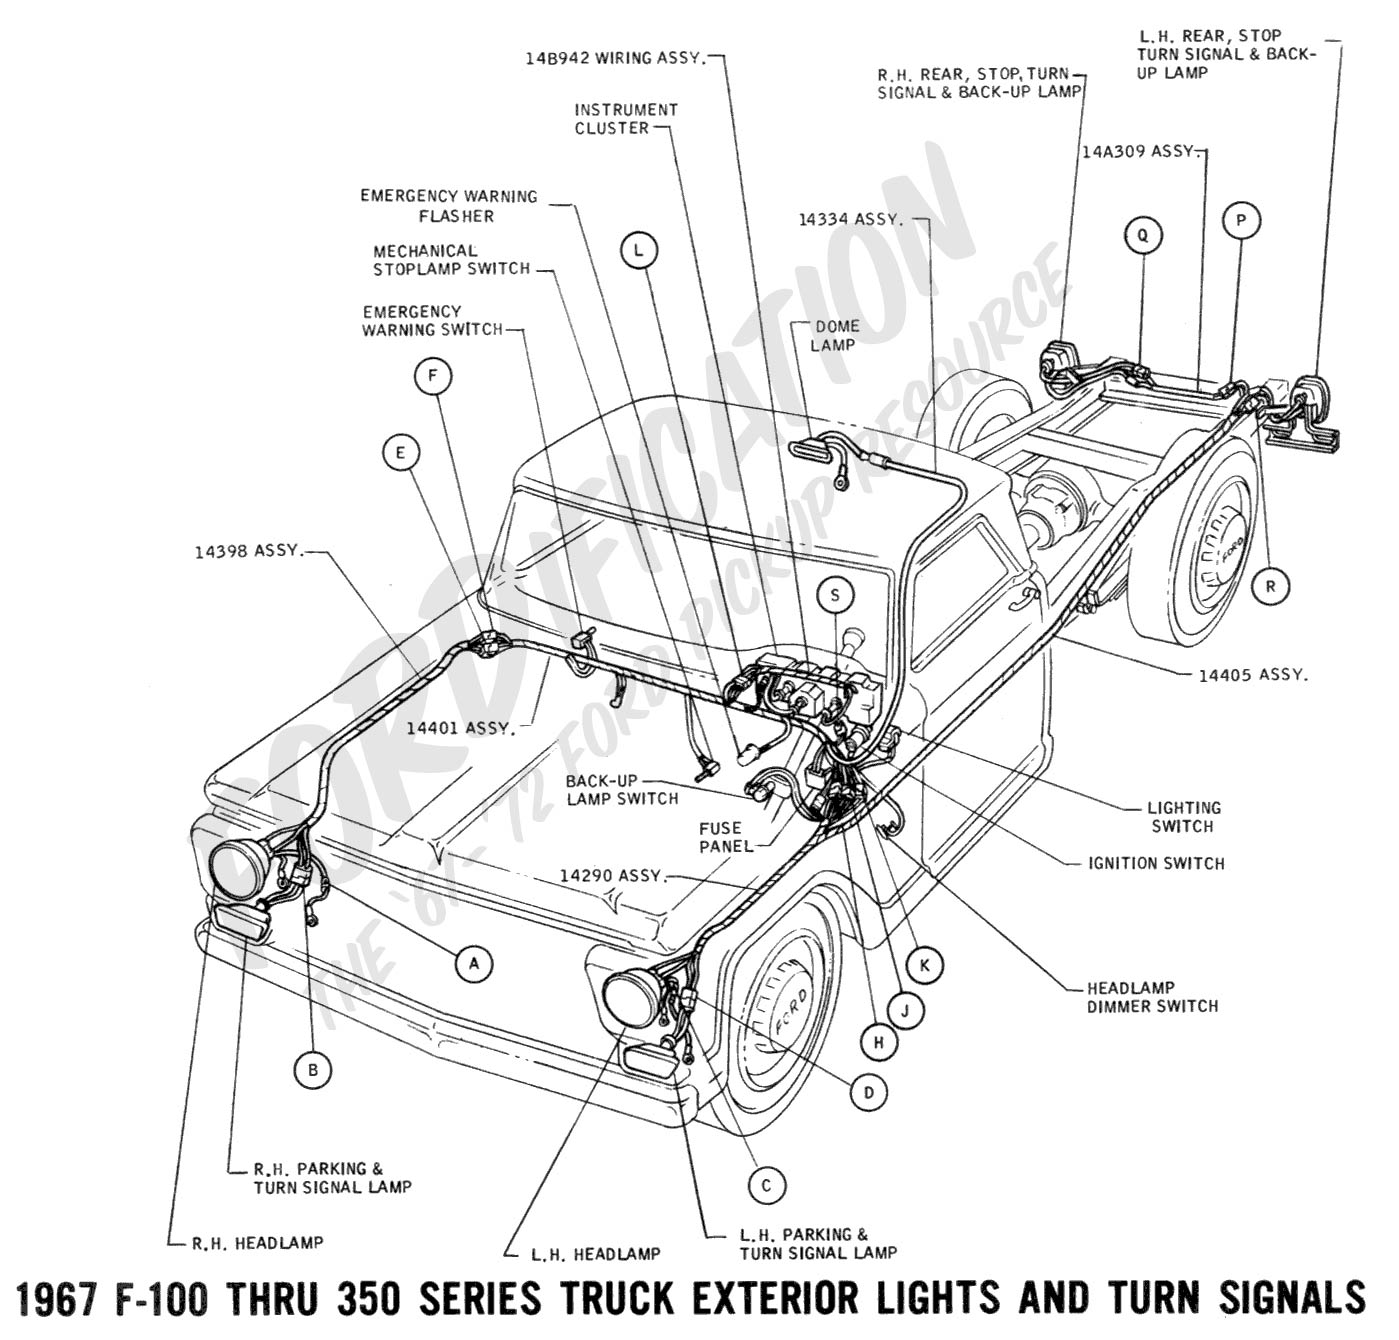 wiring 1967extlights01 ford truck technical drawings and schematics section h wiring Ford F-250 Wiring Diagram at mifinder.co